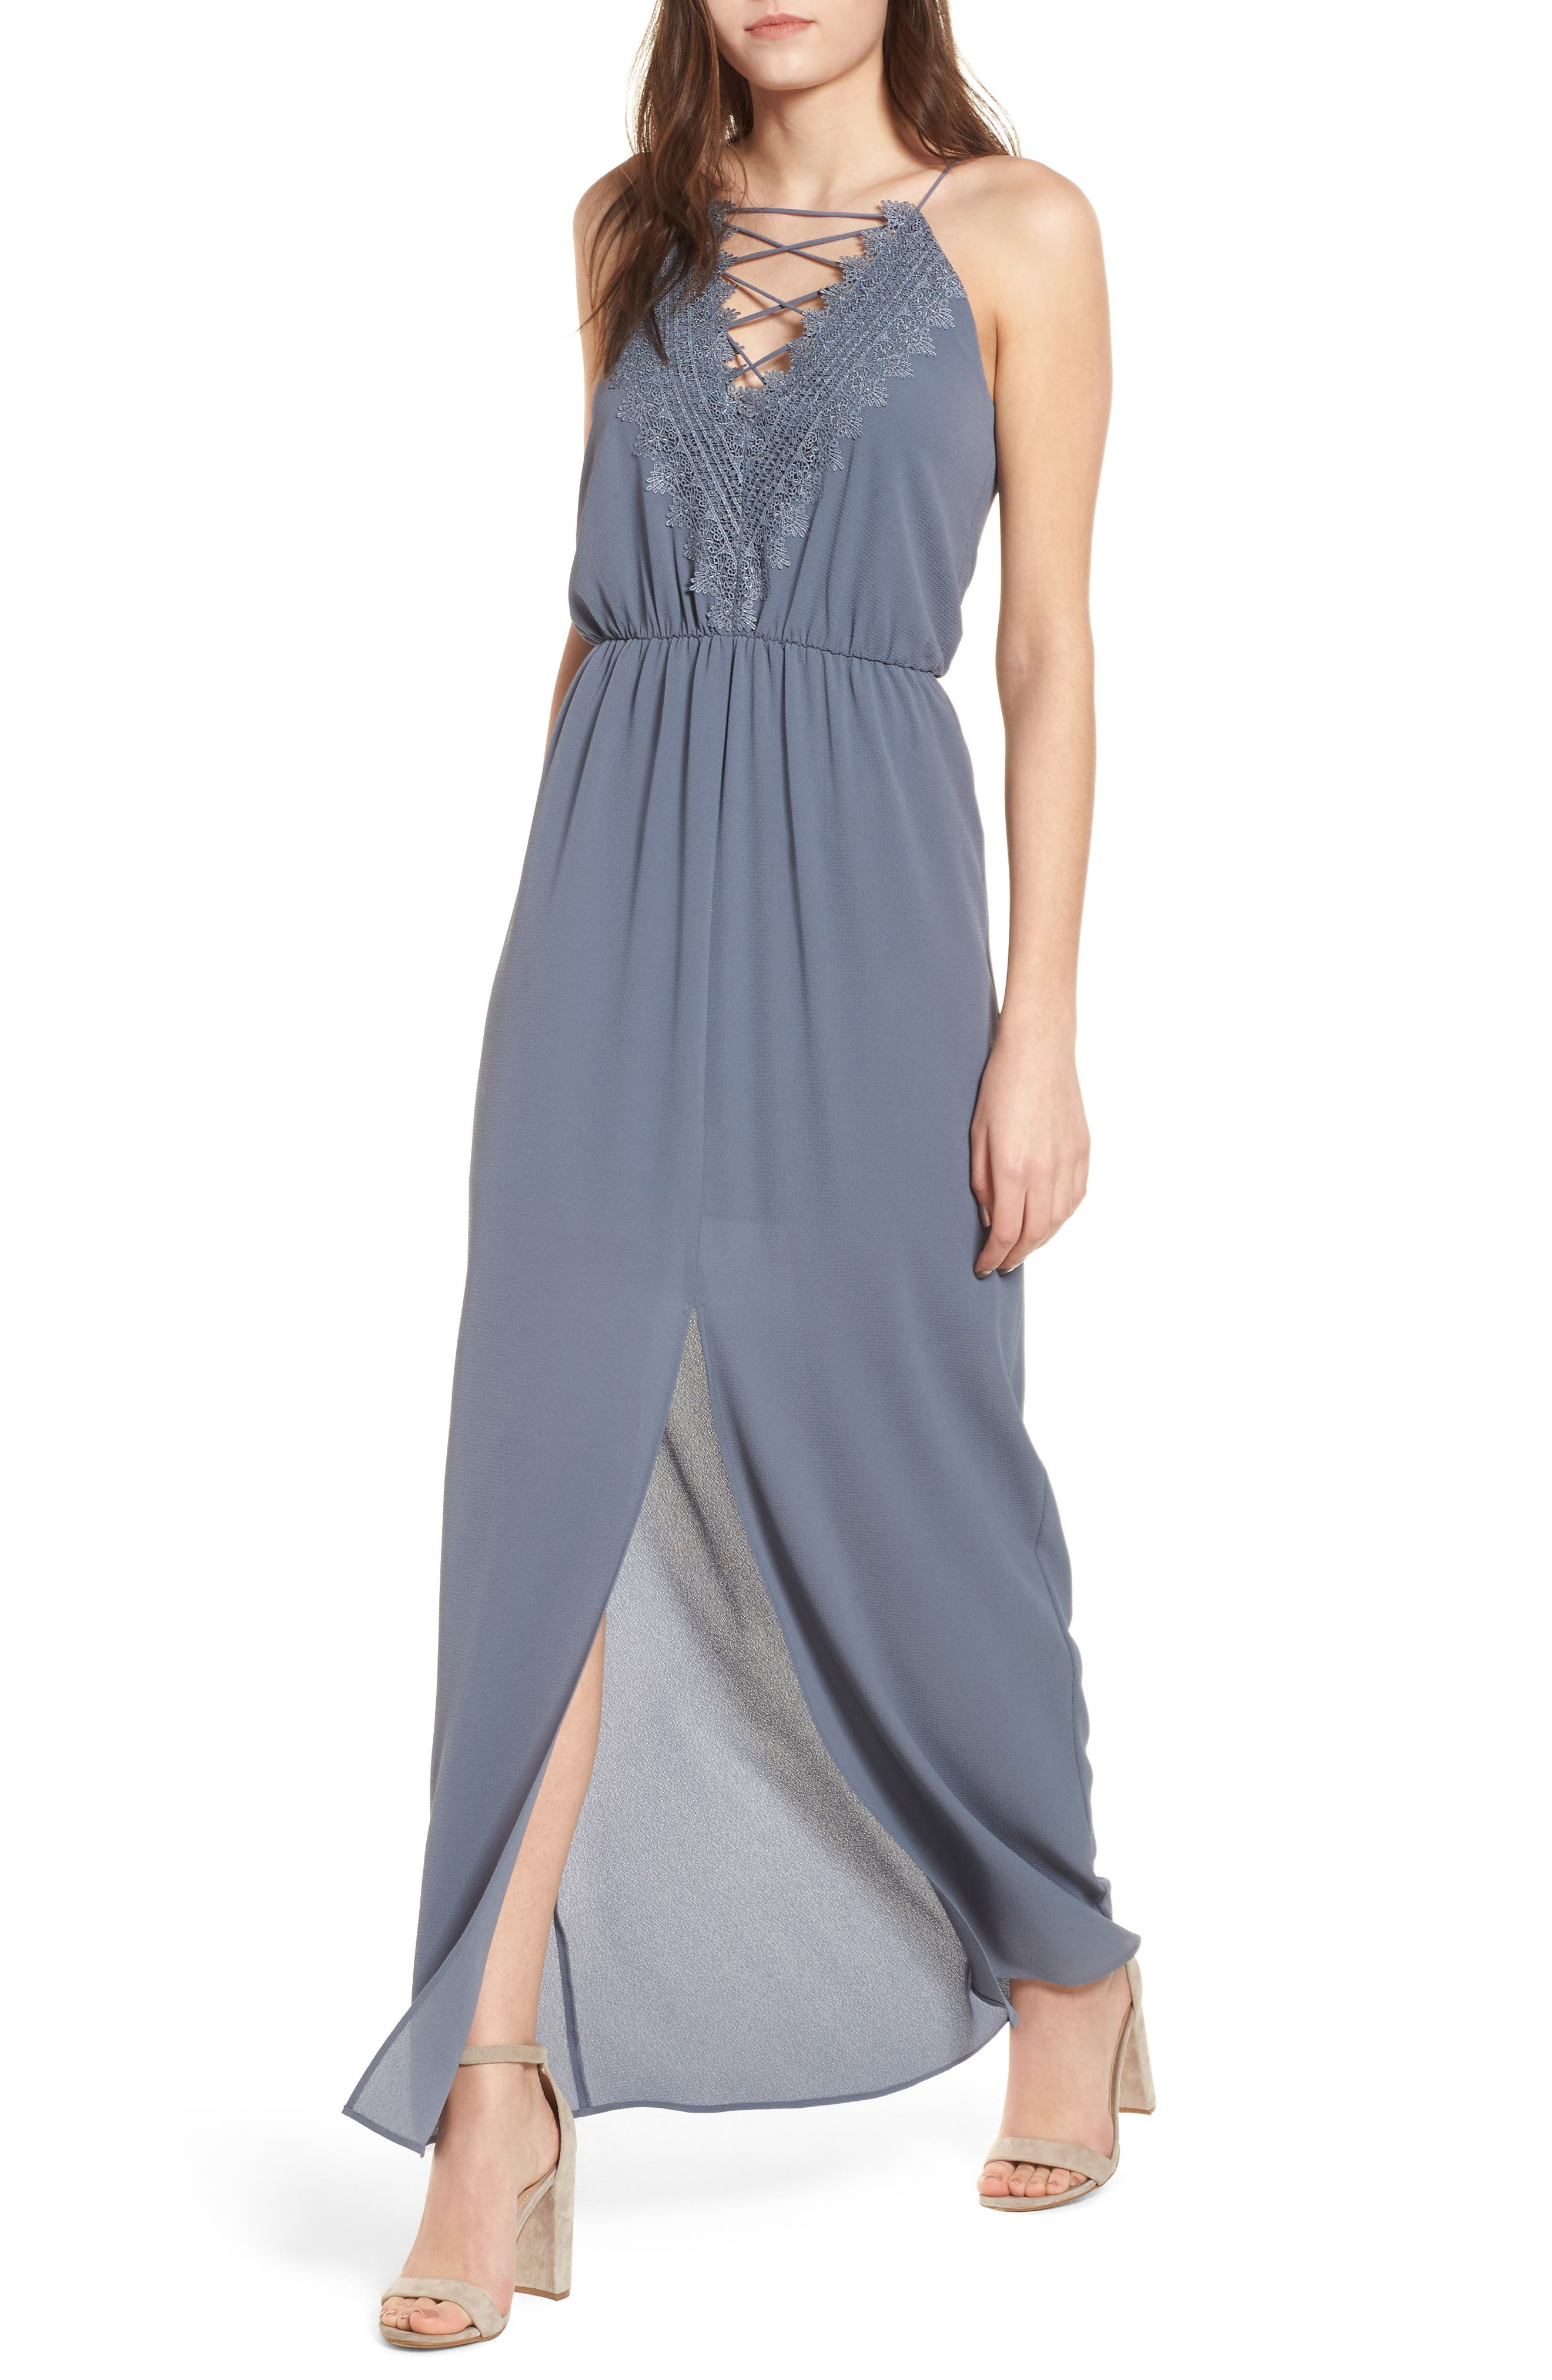 Posie Maxi Dress,                             Main thumbnail 1, color,                             Grey Grisaille